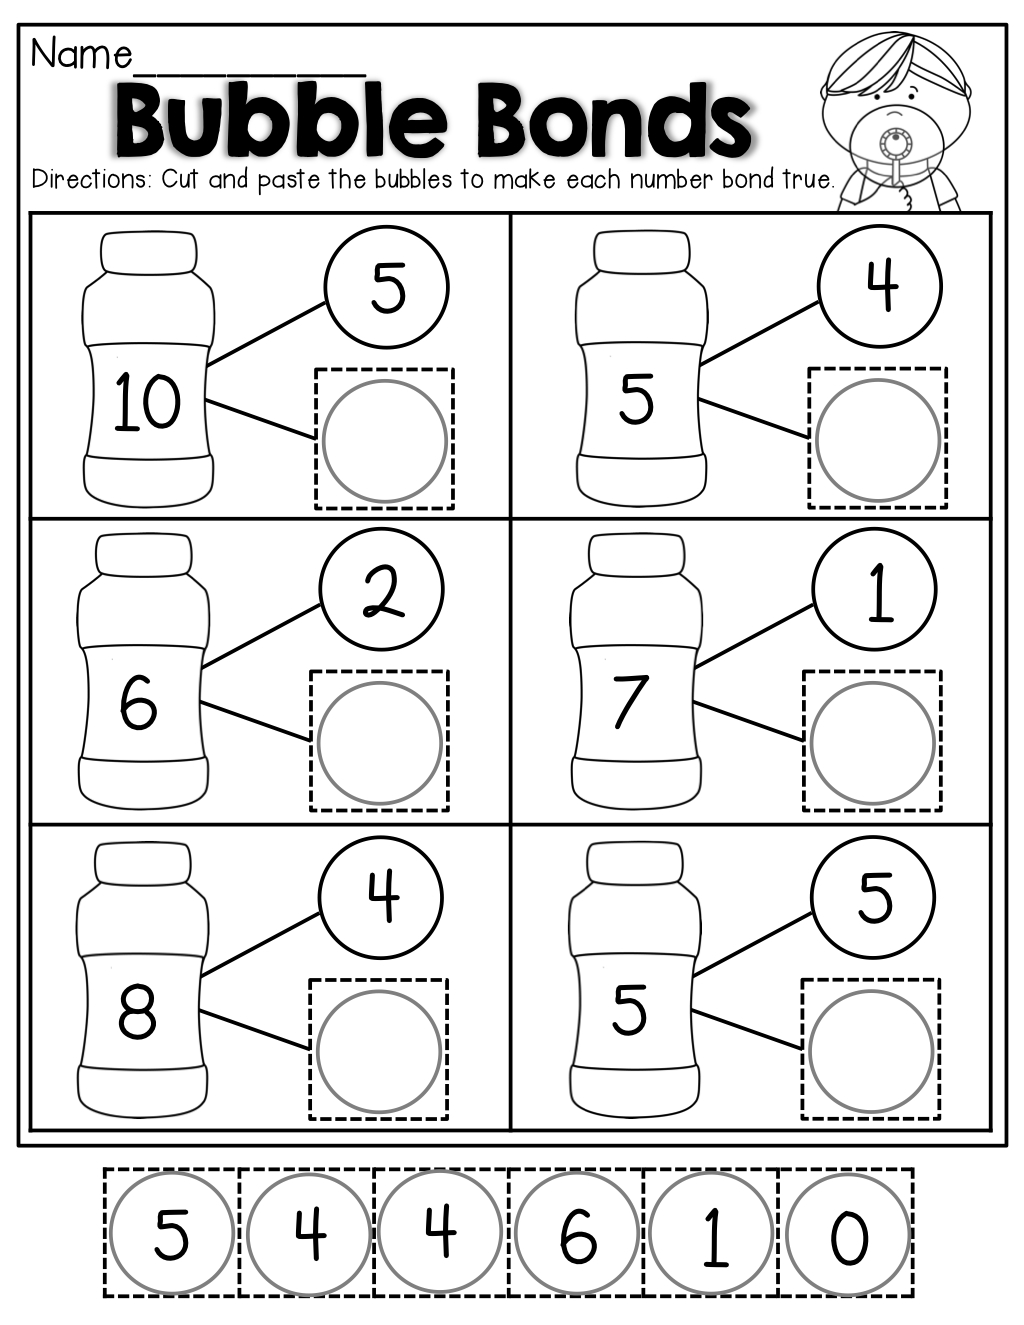 Number Bubble Bonds (Cut And Paste) | Kindergarten Activities | Math - Free Printable Number Bond Template